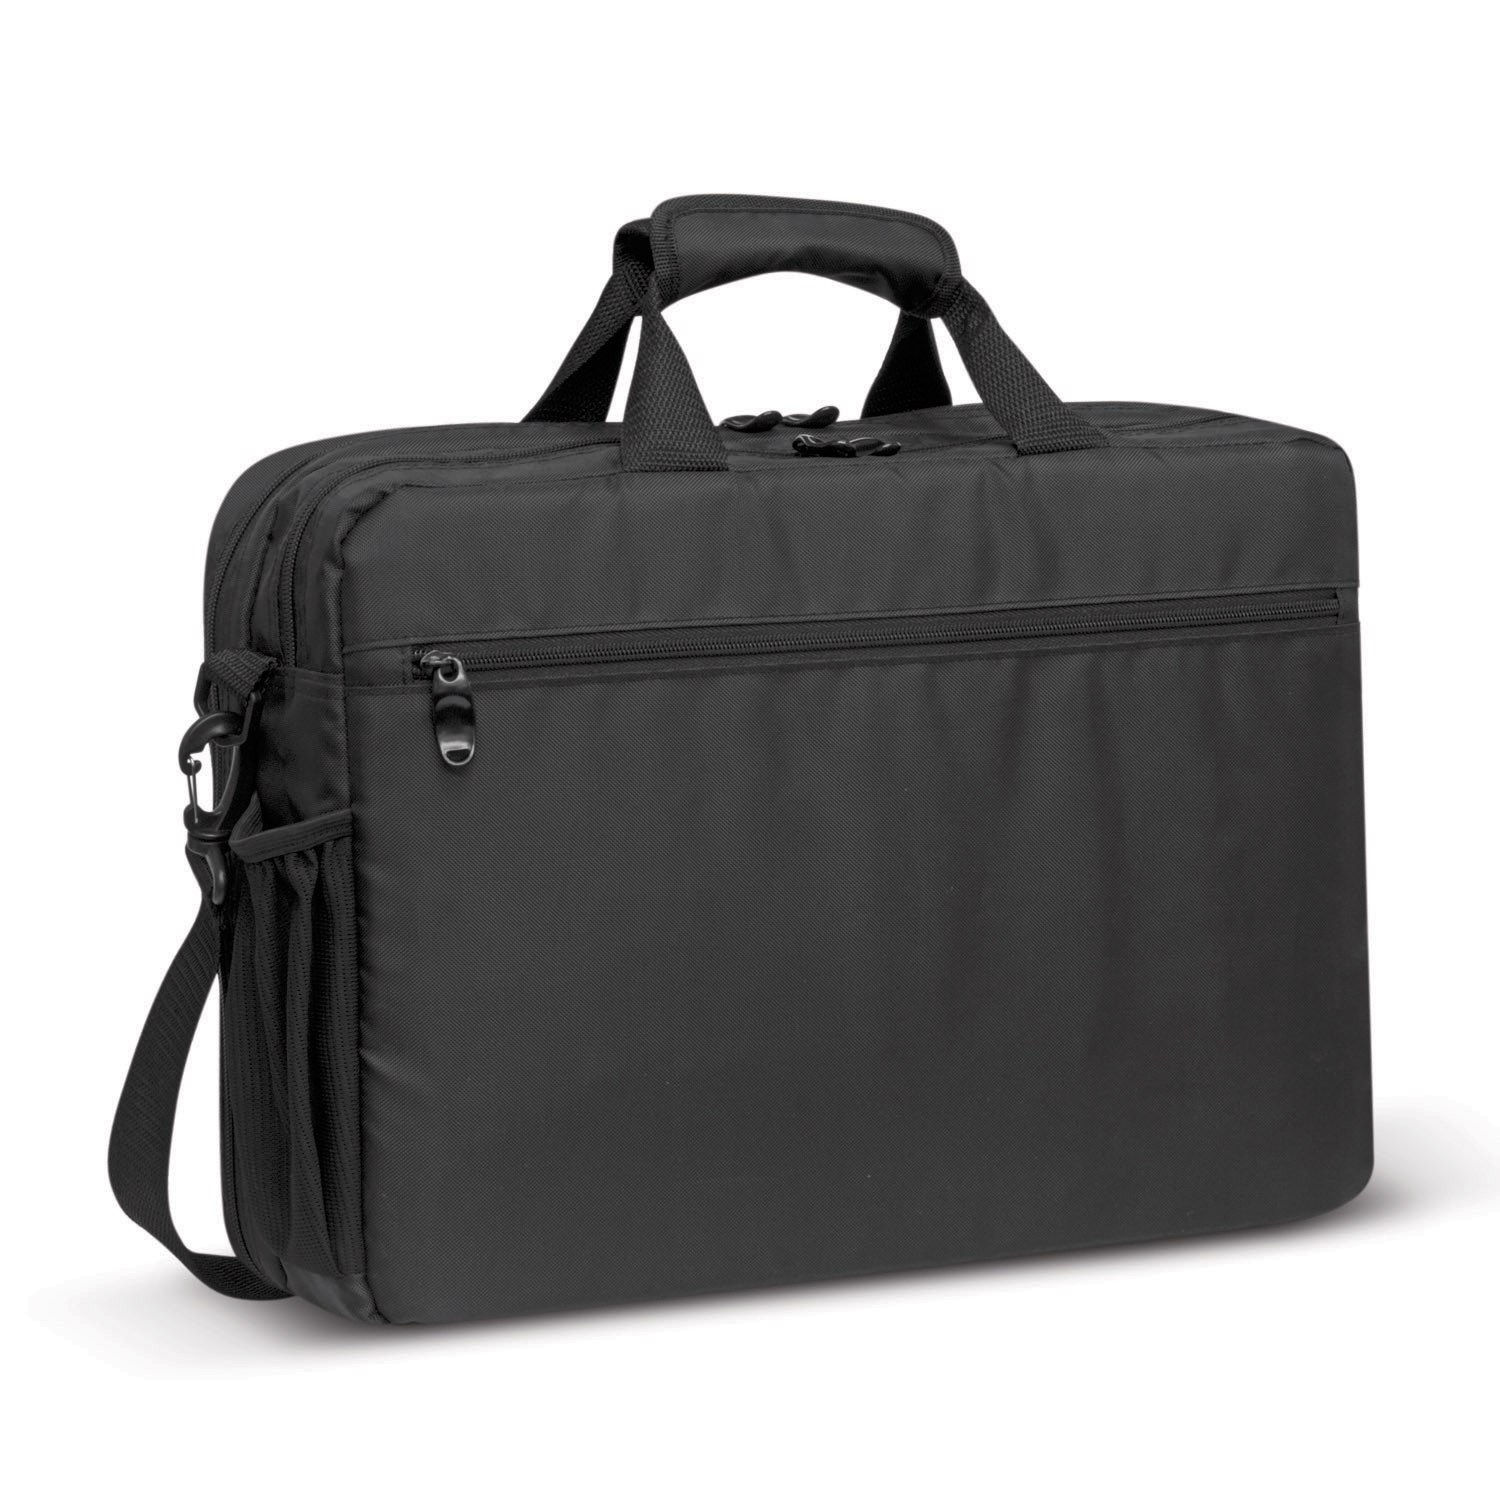 107688-0-Harvard Laptop Bag